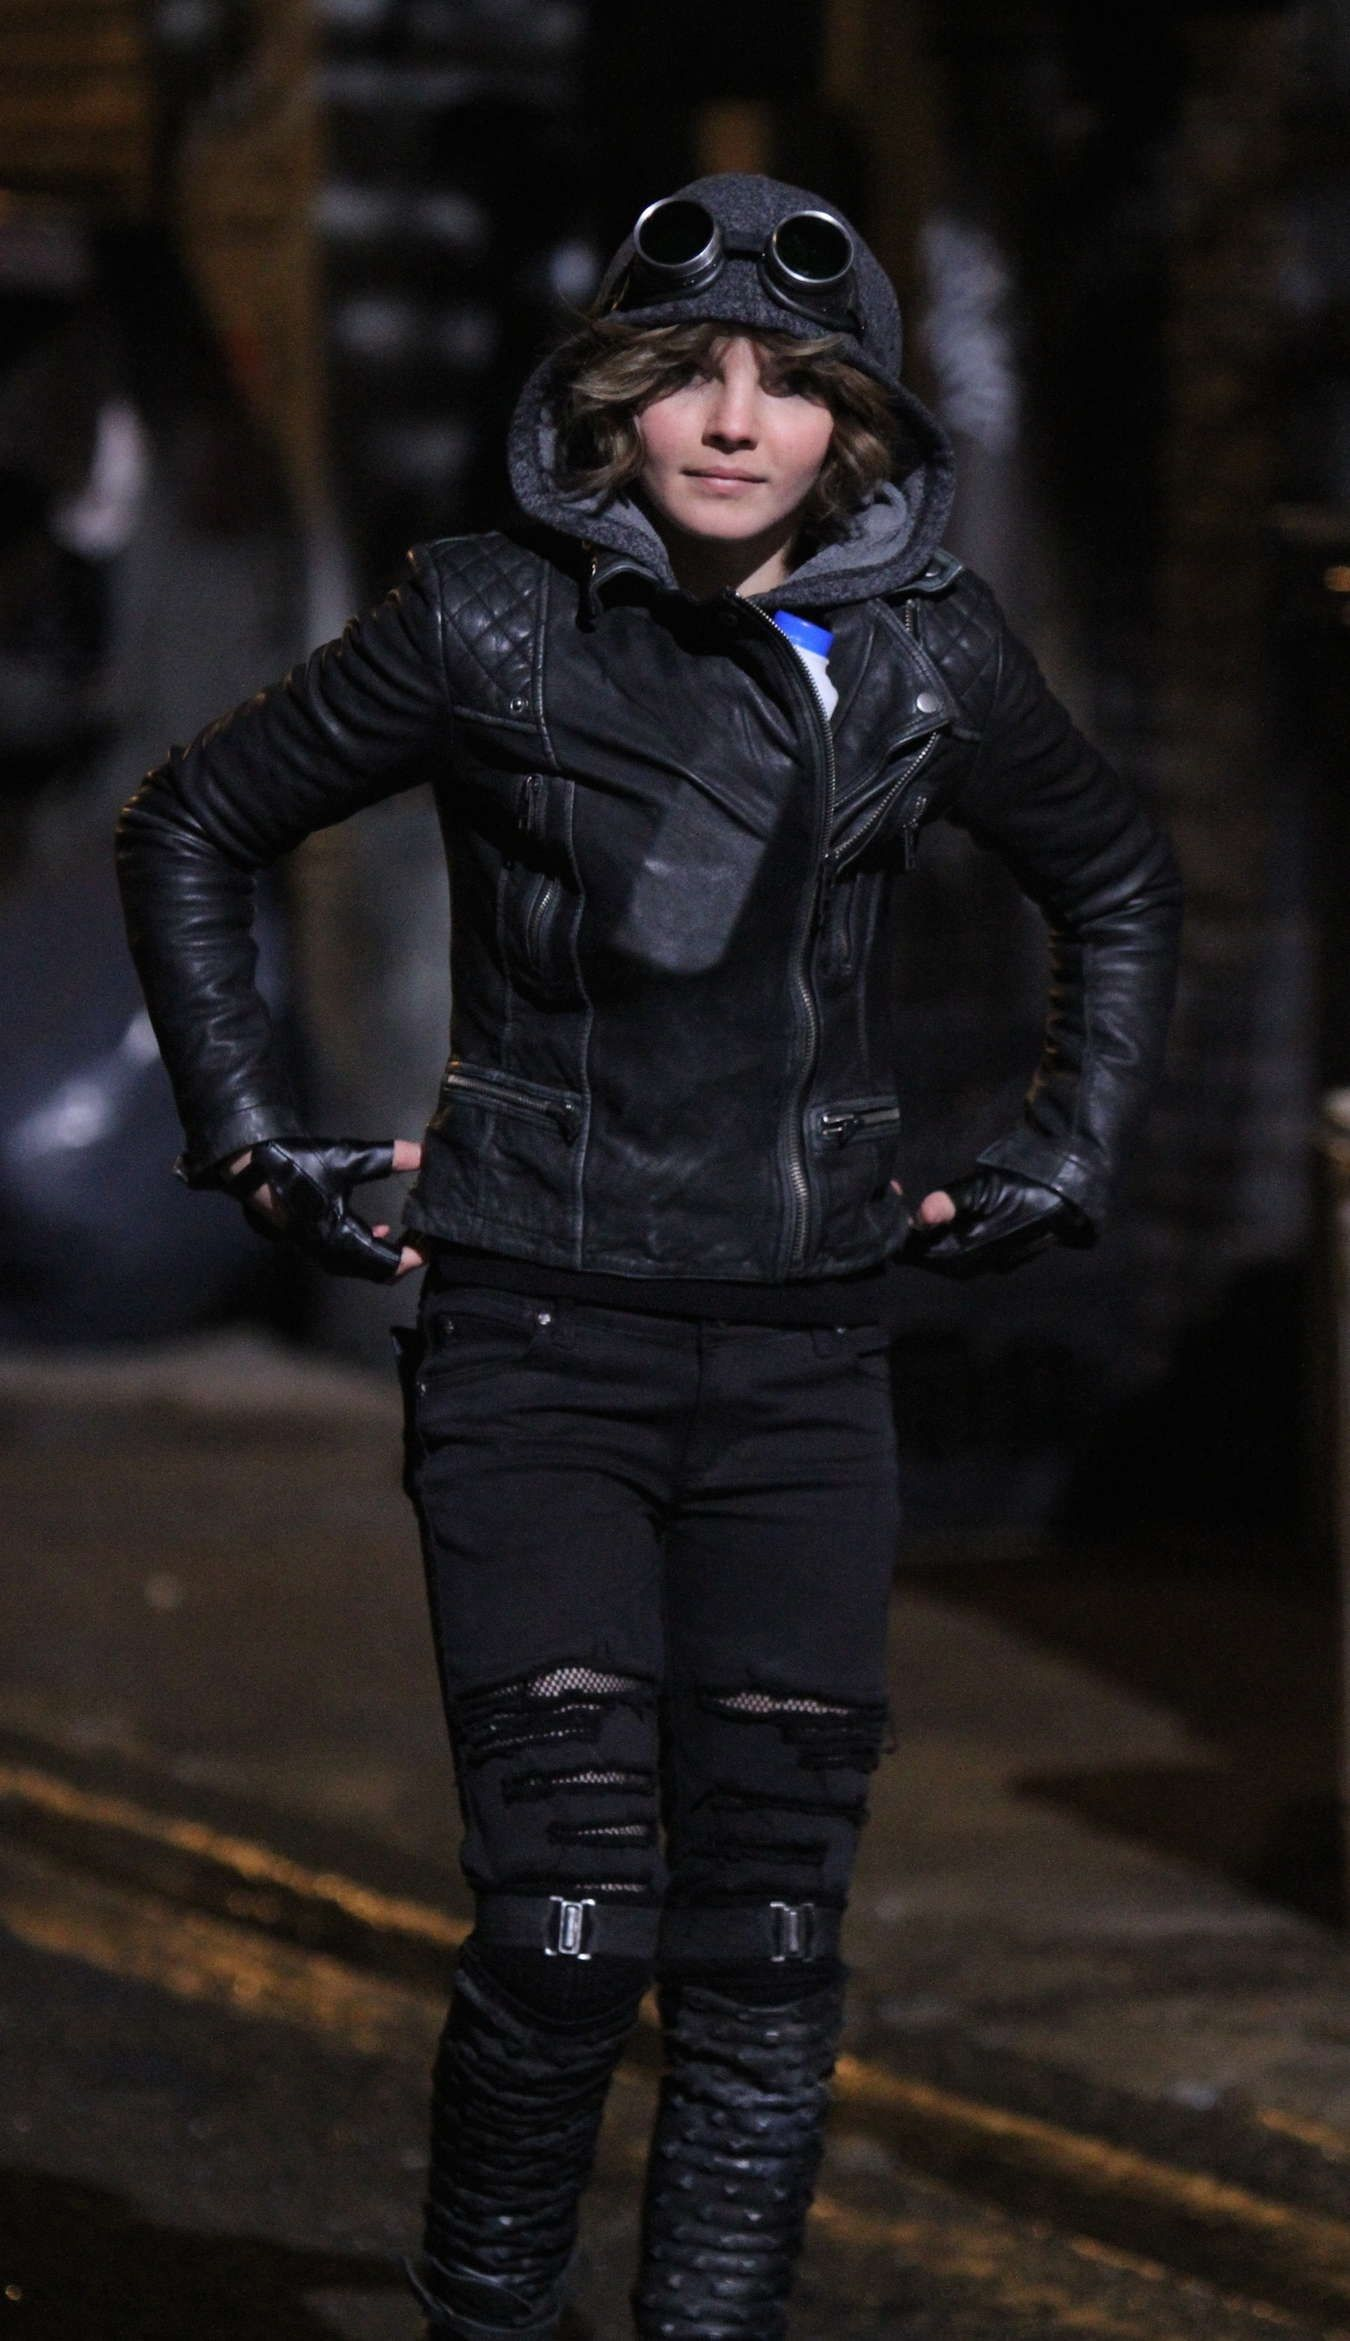 Camren Bicondova as a young Selina Kyle in the new Gotham